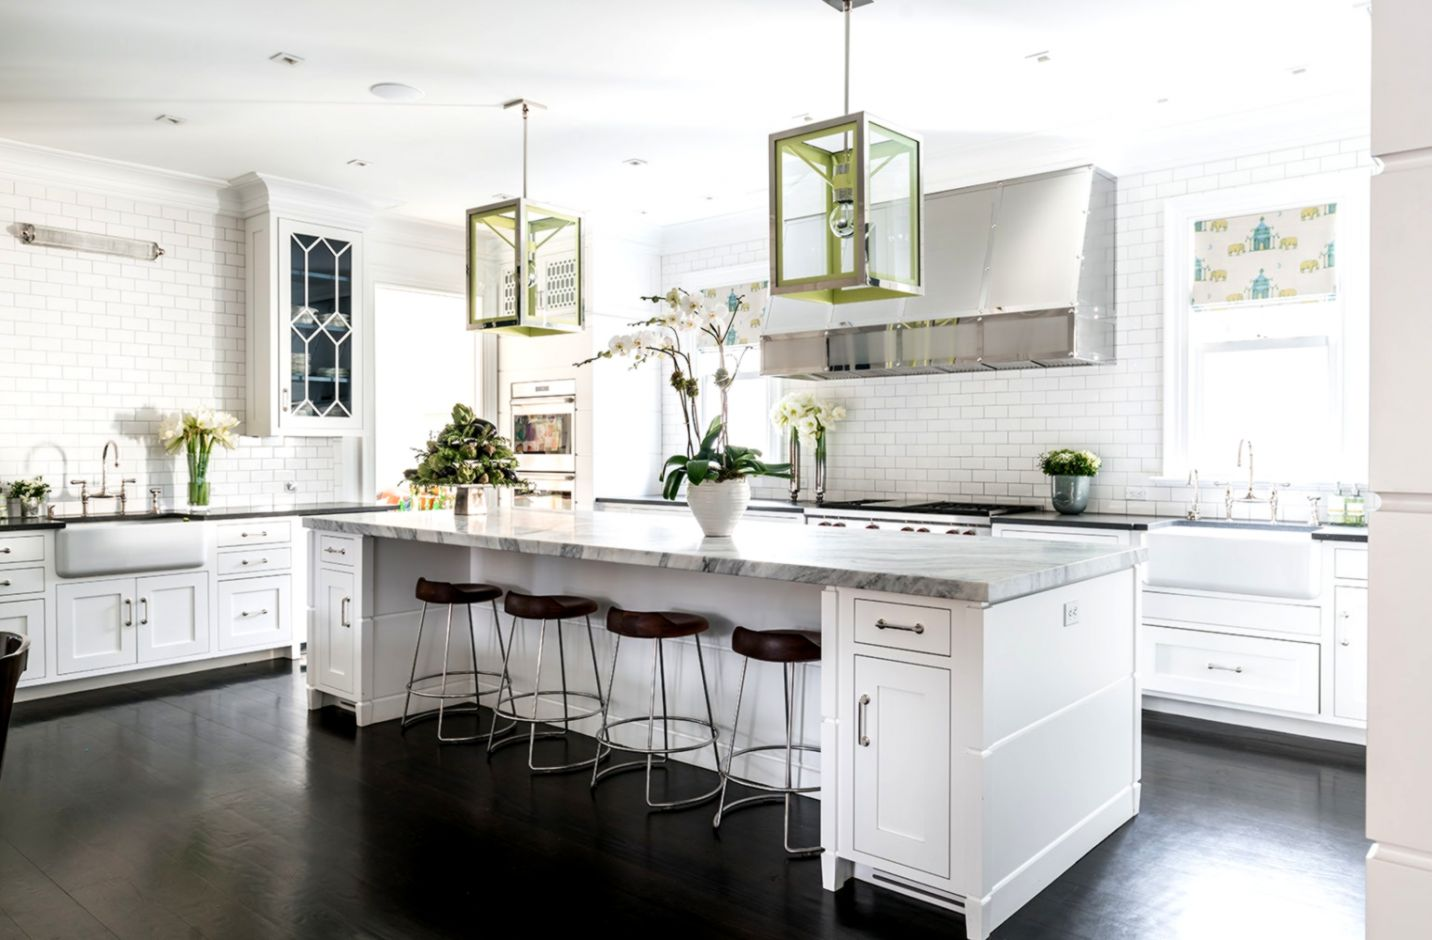 Kitchen Images With Island Wallpapers Ideas